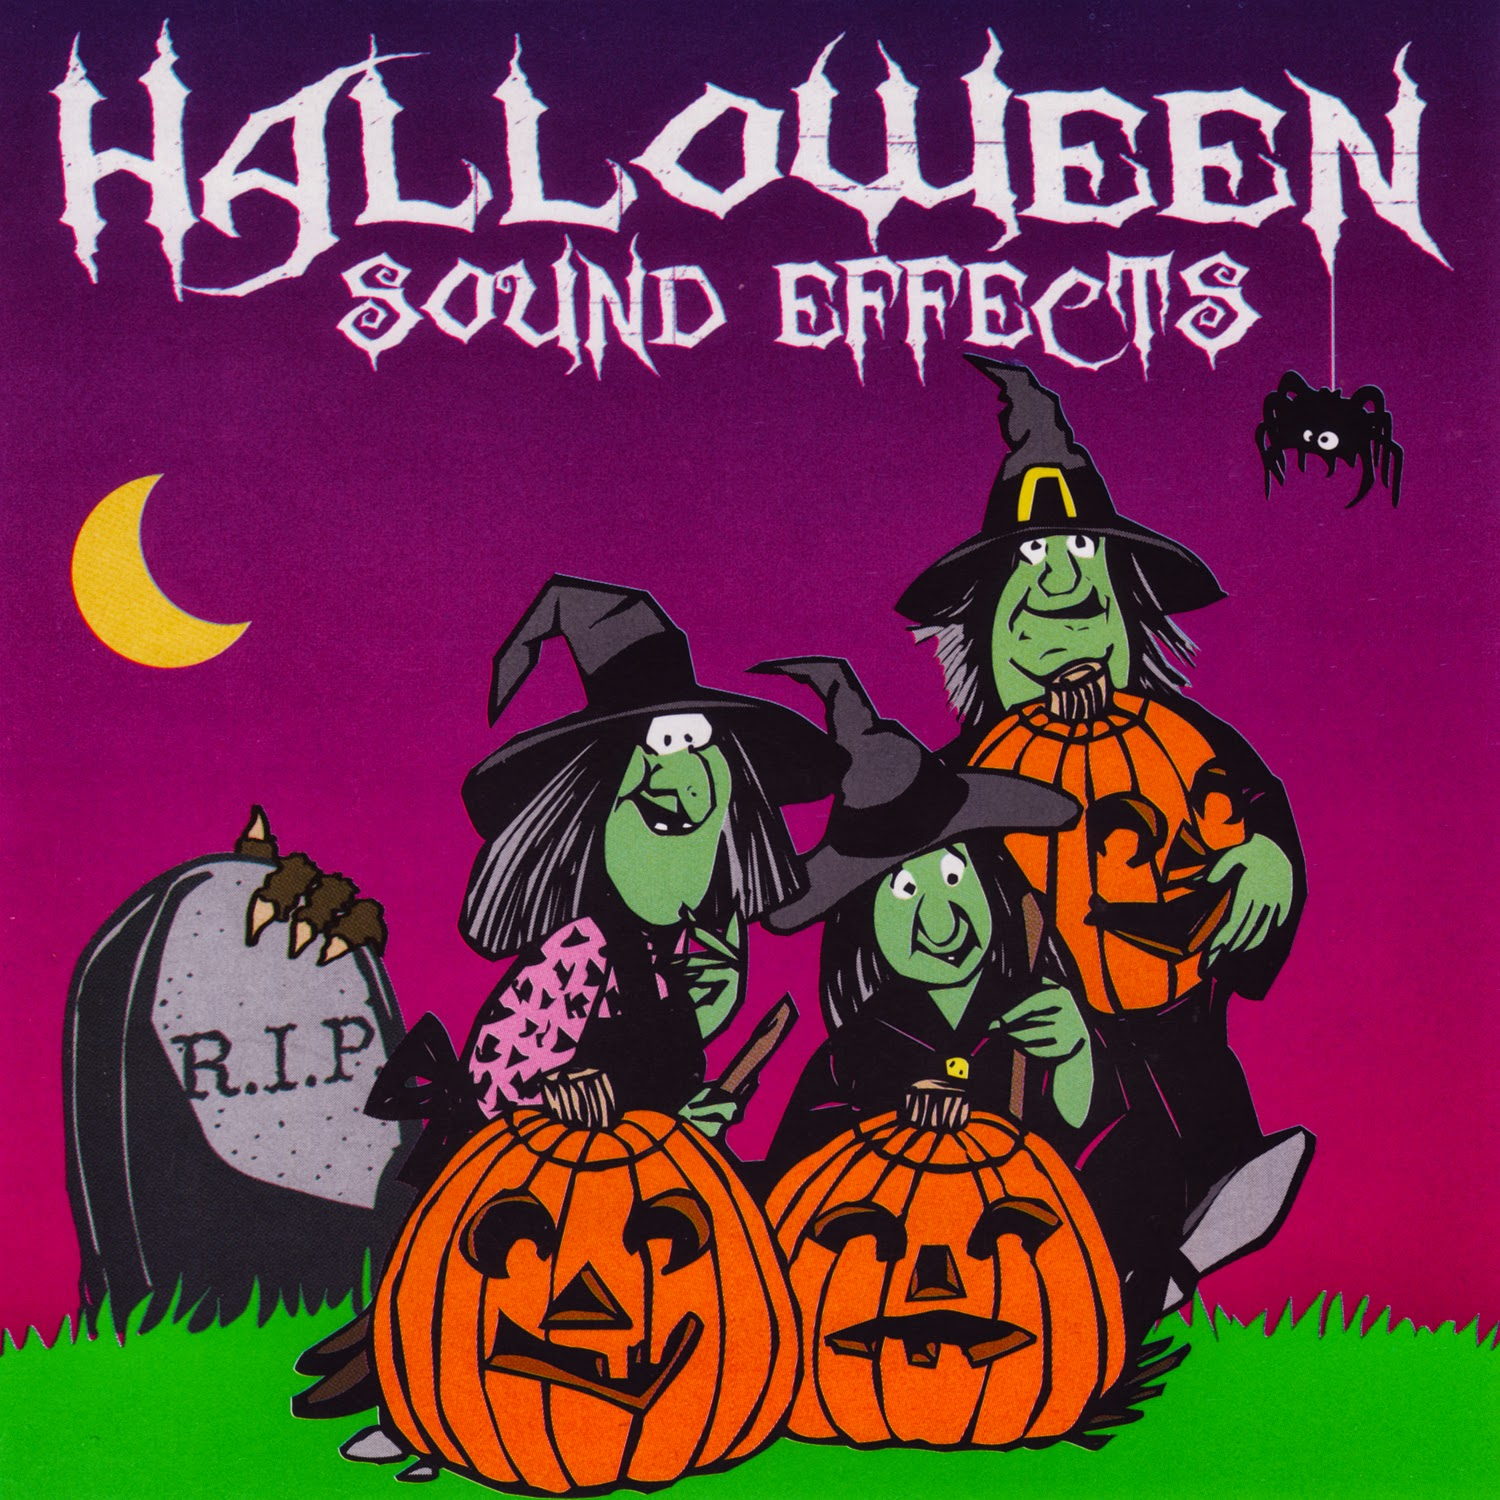 Scary Sounds of Halloween Blog: Halloween Sound Effects